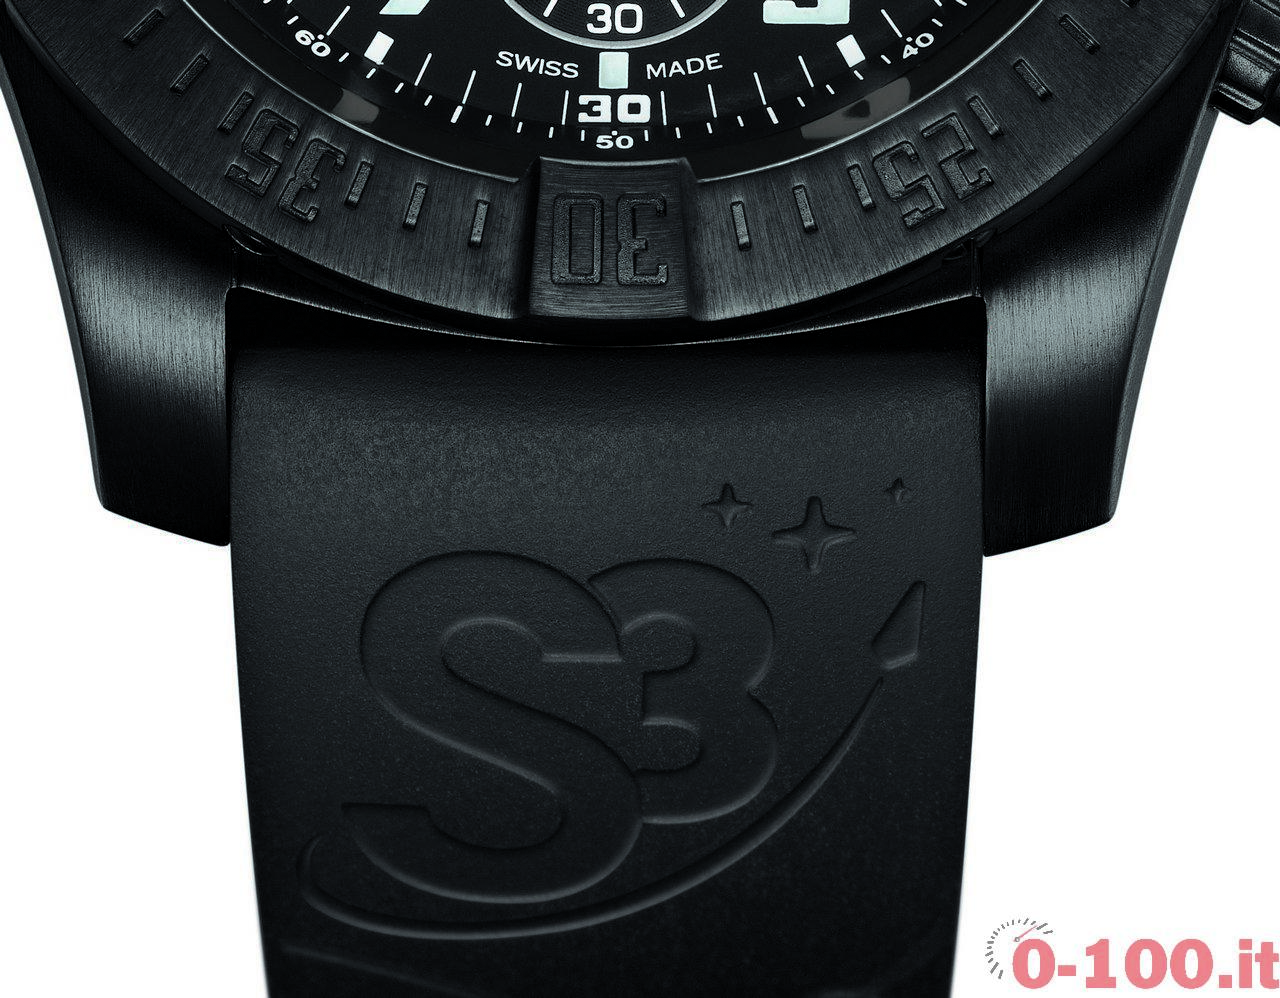 breitling-chronograph-s3-swiss-space-systems-0-100-11